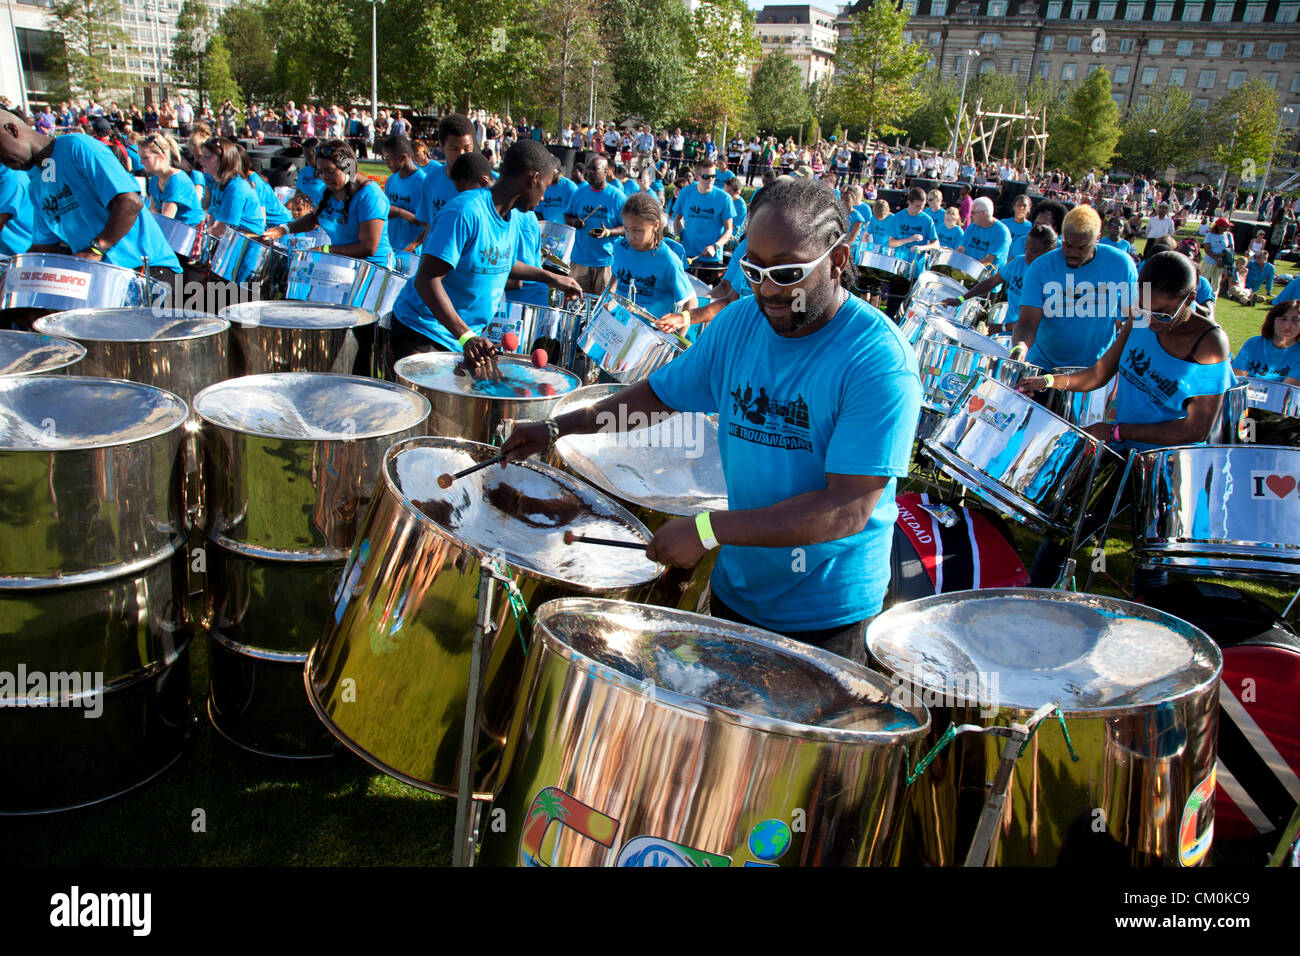 London, UK. 8th September, 2012. One Thousand Pans. Players from steel band pan yards all over the UK converge at - Stock Image